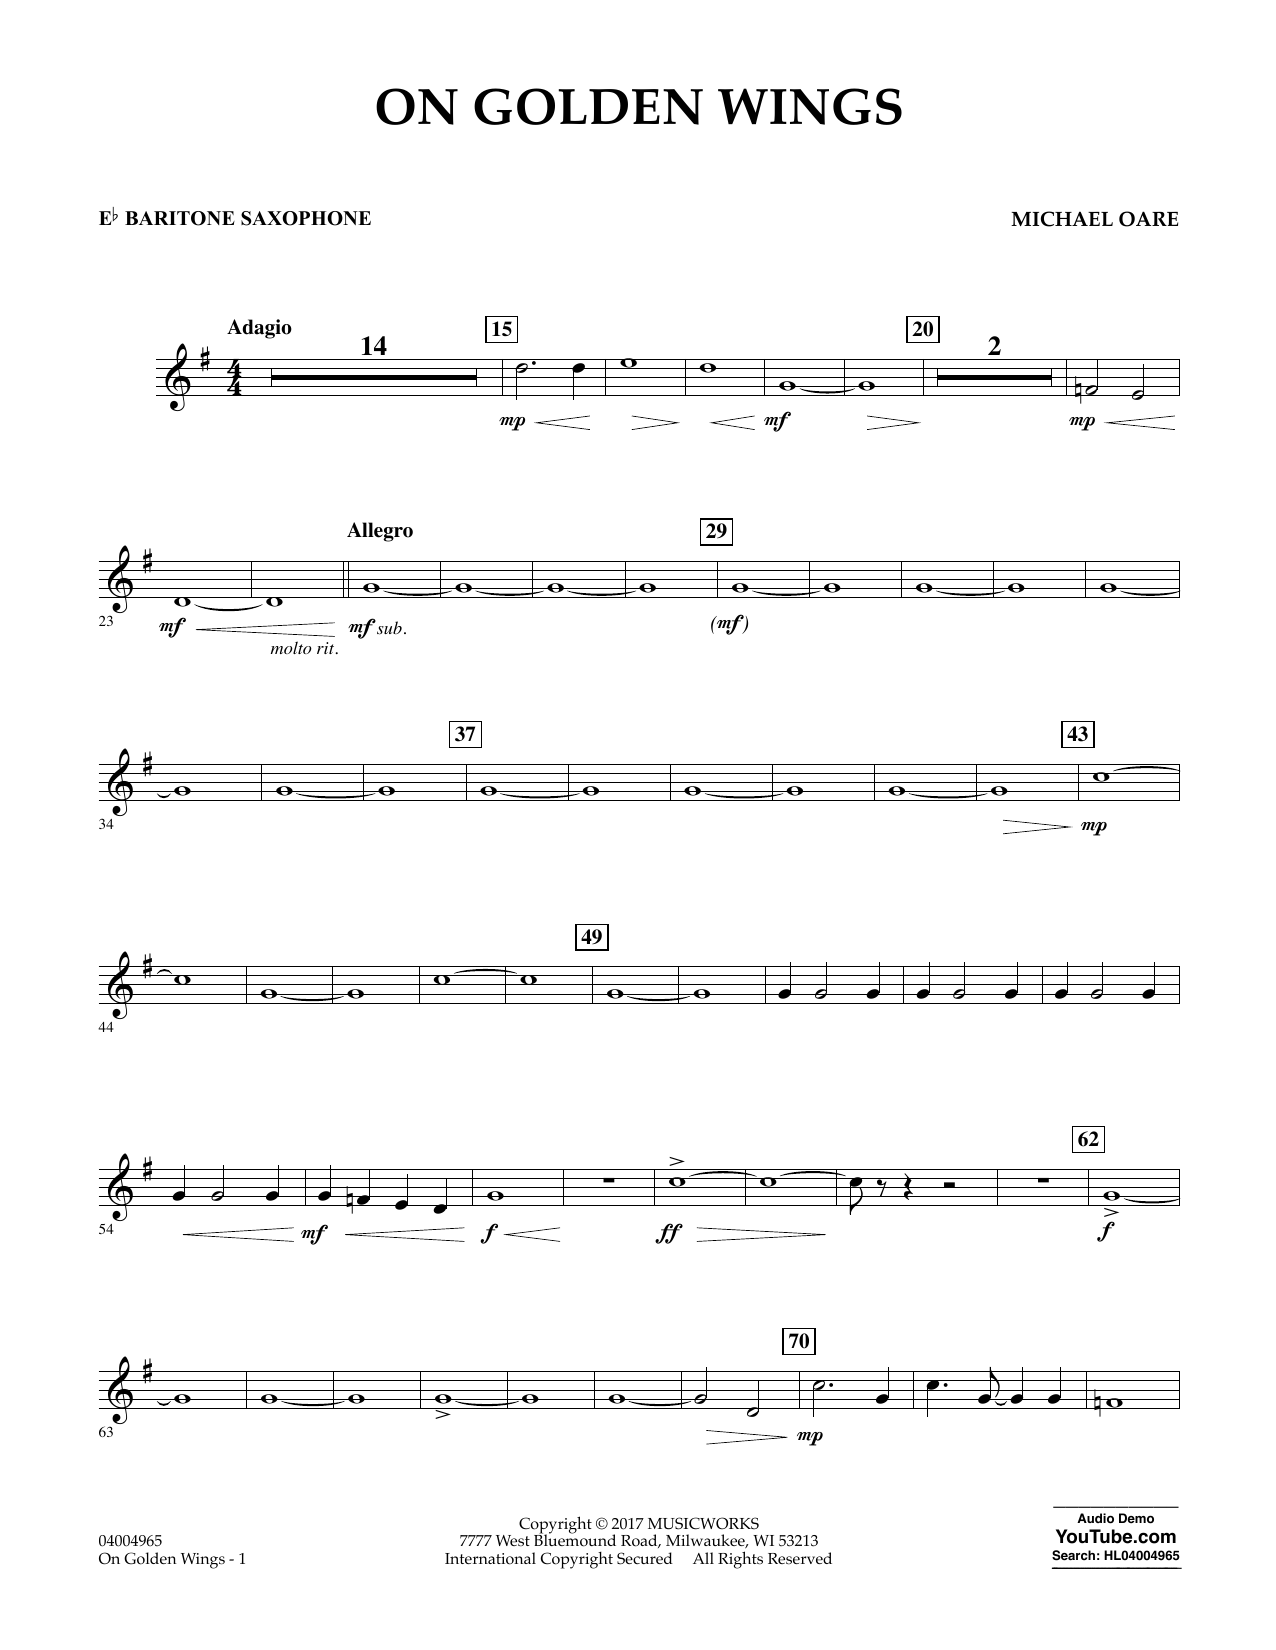 Michael Oare On Golden Wings - Eb Baritone Saxophone sheet music notes and chords. Download Printable PDF.